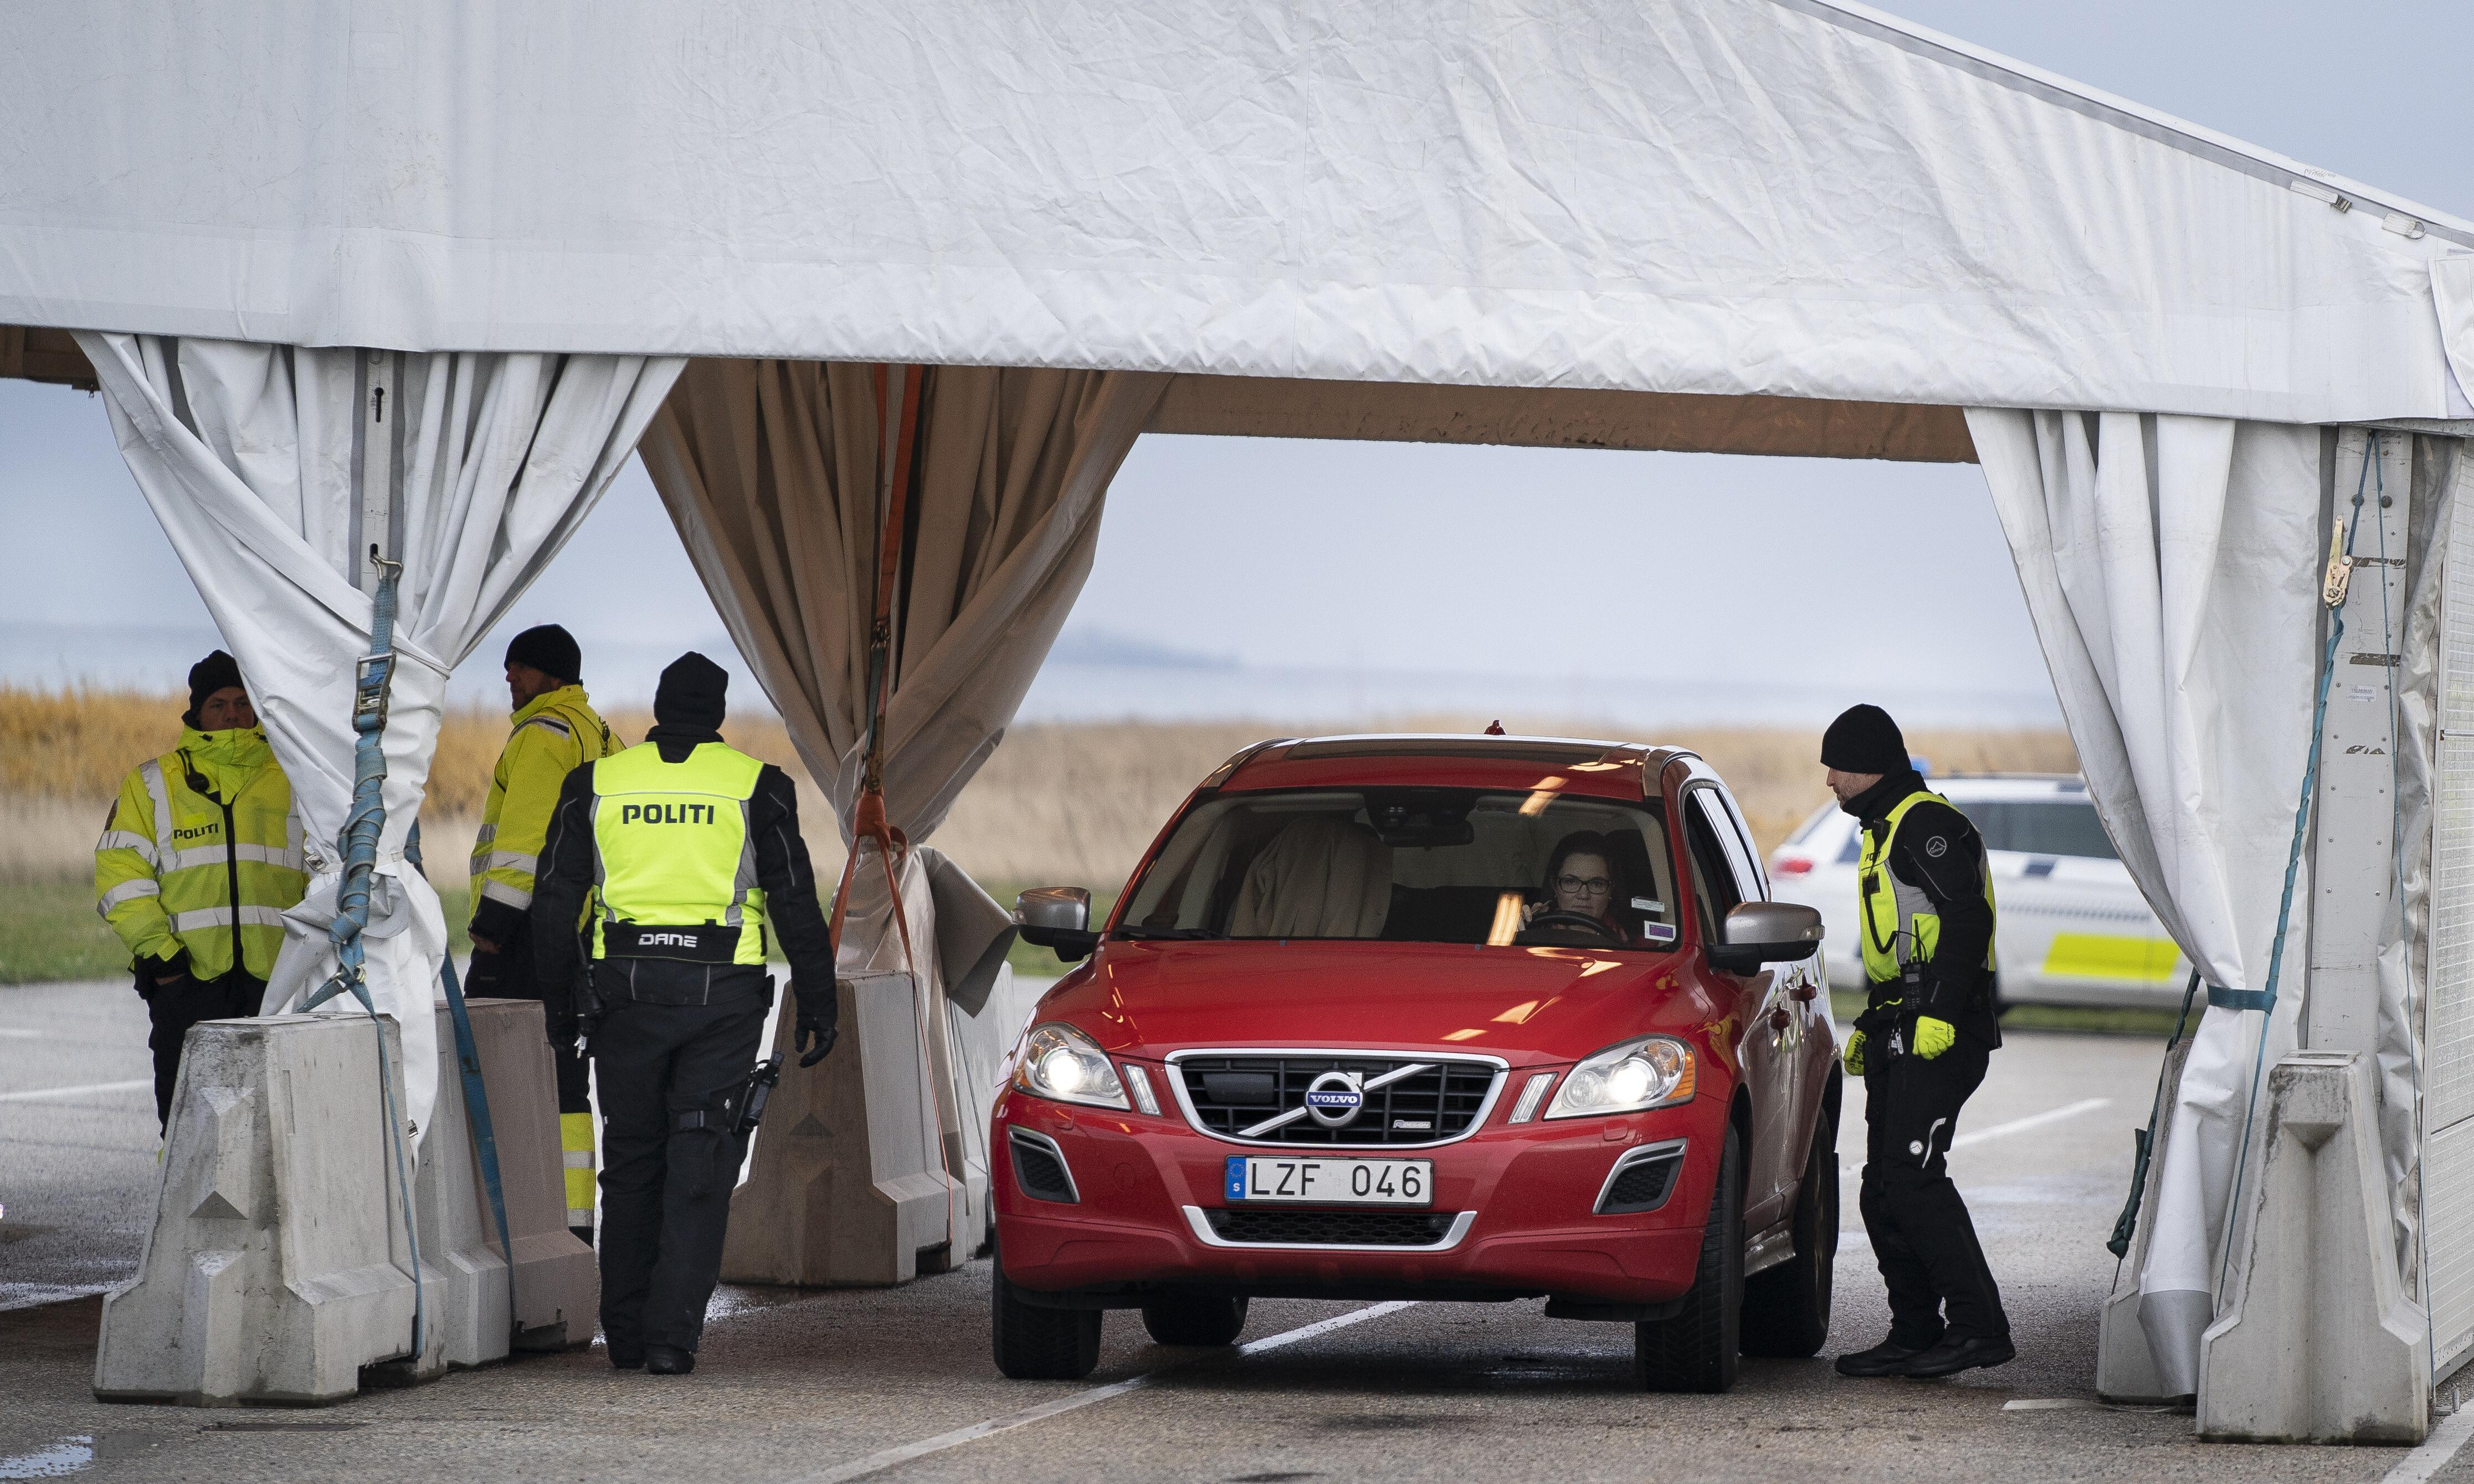 Denmark reinstates border checks at crossings to Sweden after bombings